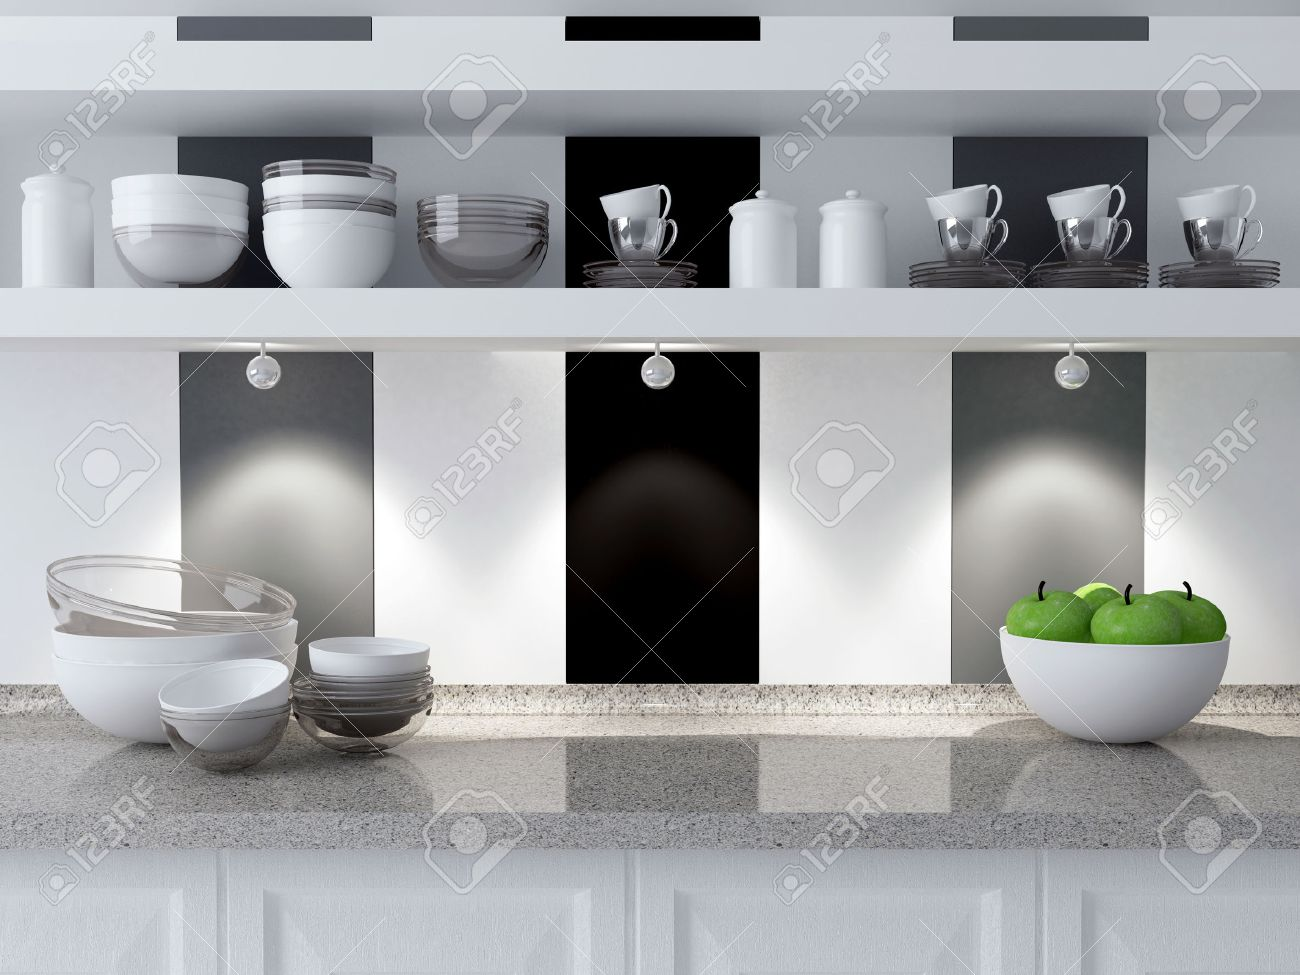 Modern Kitchen Design Ceramic Kitchenware On The Marble Worktop Plates Cups On The